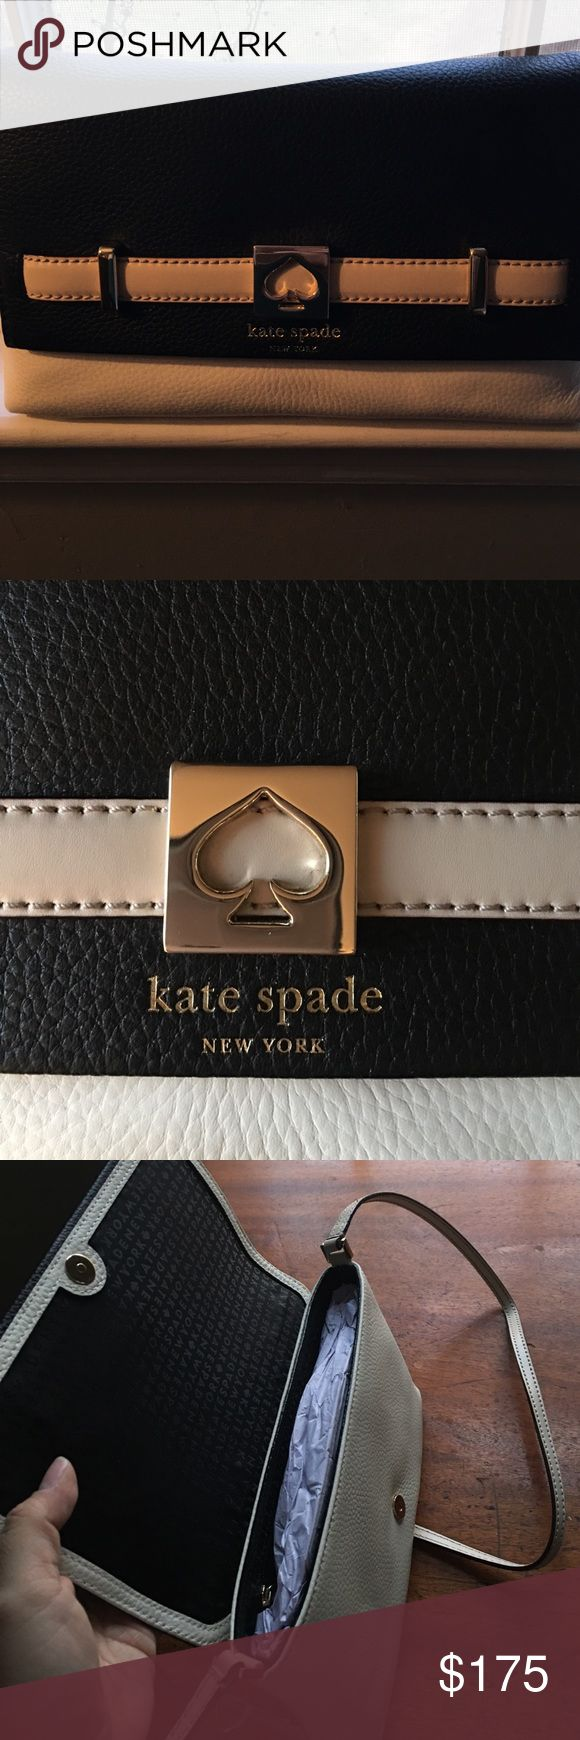 Kate Spade Loula Houston Street crossbody purse! *new with tags* Kate Spade Loula Houston Street purse is white with black flap and taupe accent straps. The inside materials is black and flaunts the Kate Spade logo. It is in perfect condition with no flaws or damages. This purse is quite spacious for a crossbody and includes a zipper compartment on the inside. Snaps closed at the front. 👛❤ kate spade Bags Crossbody Bags